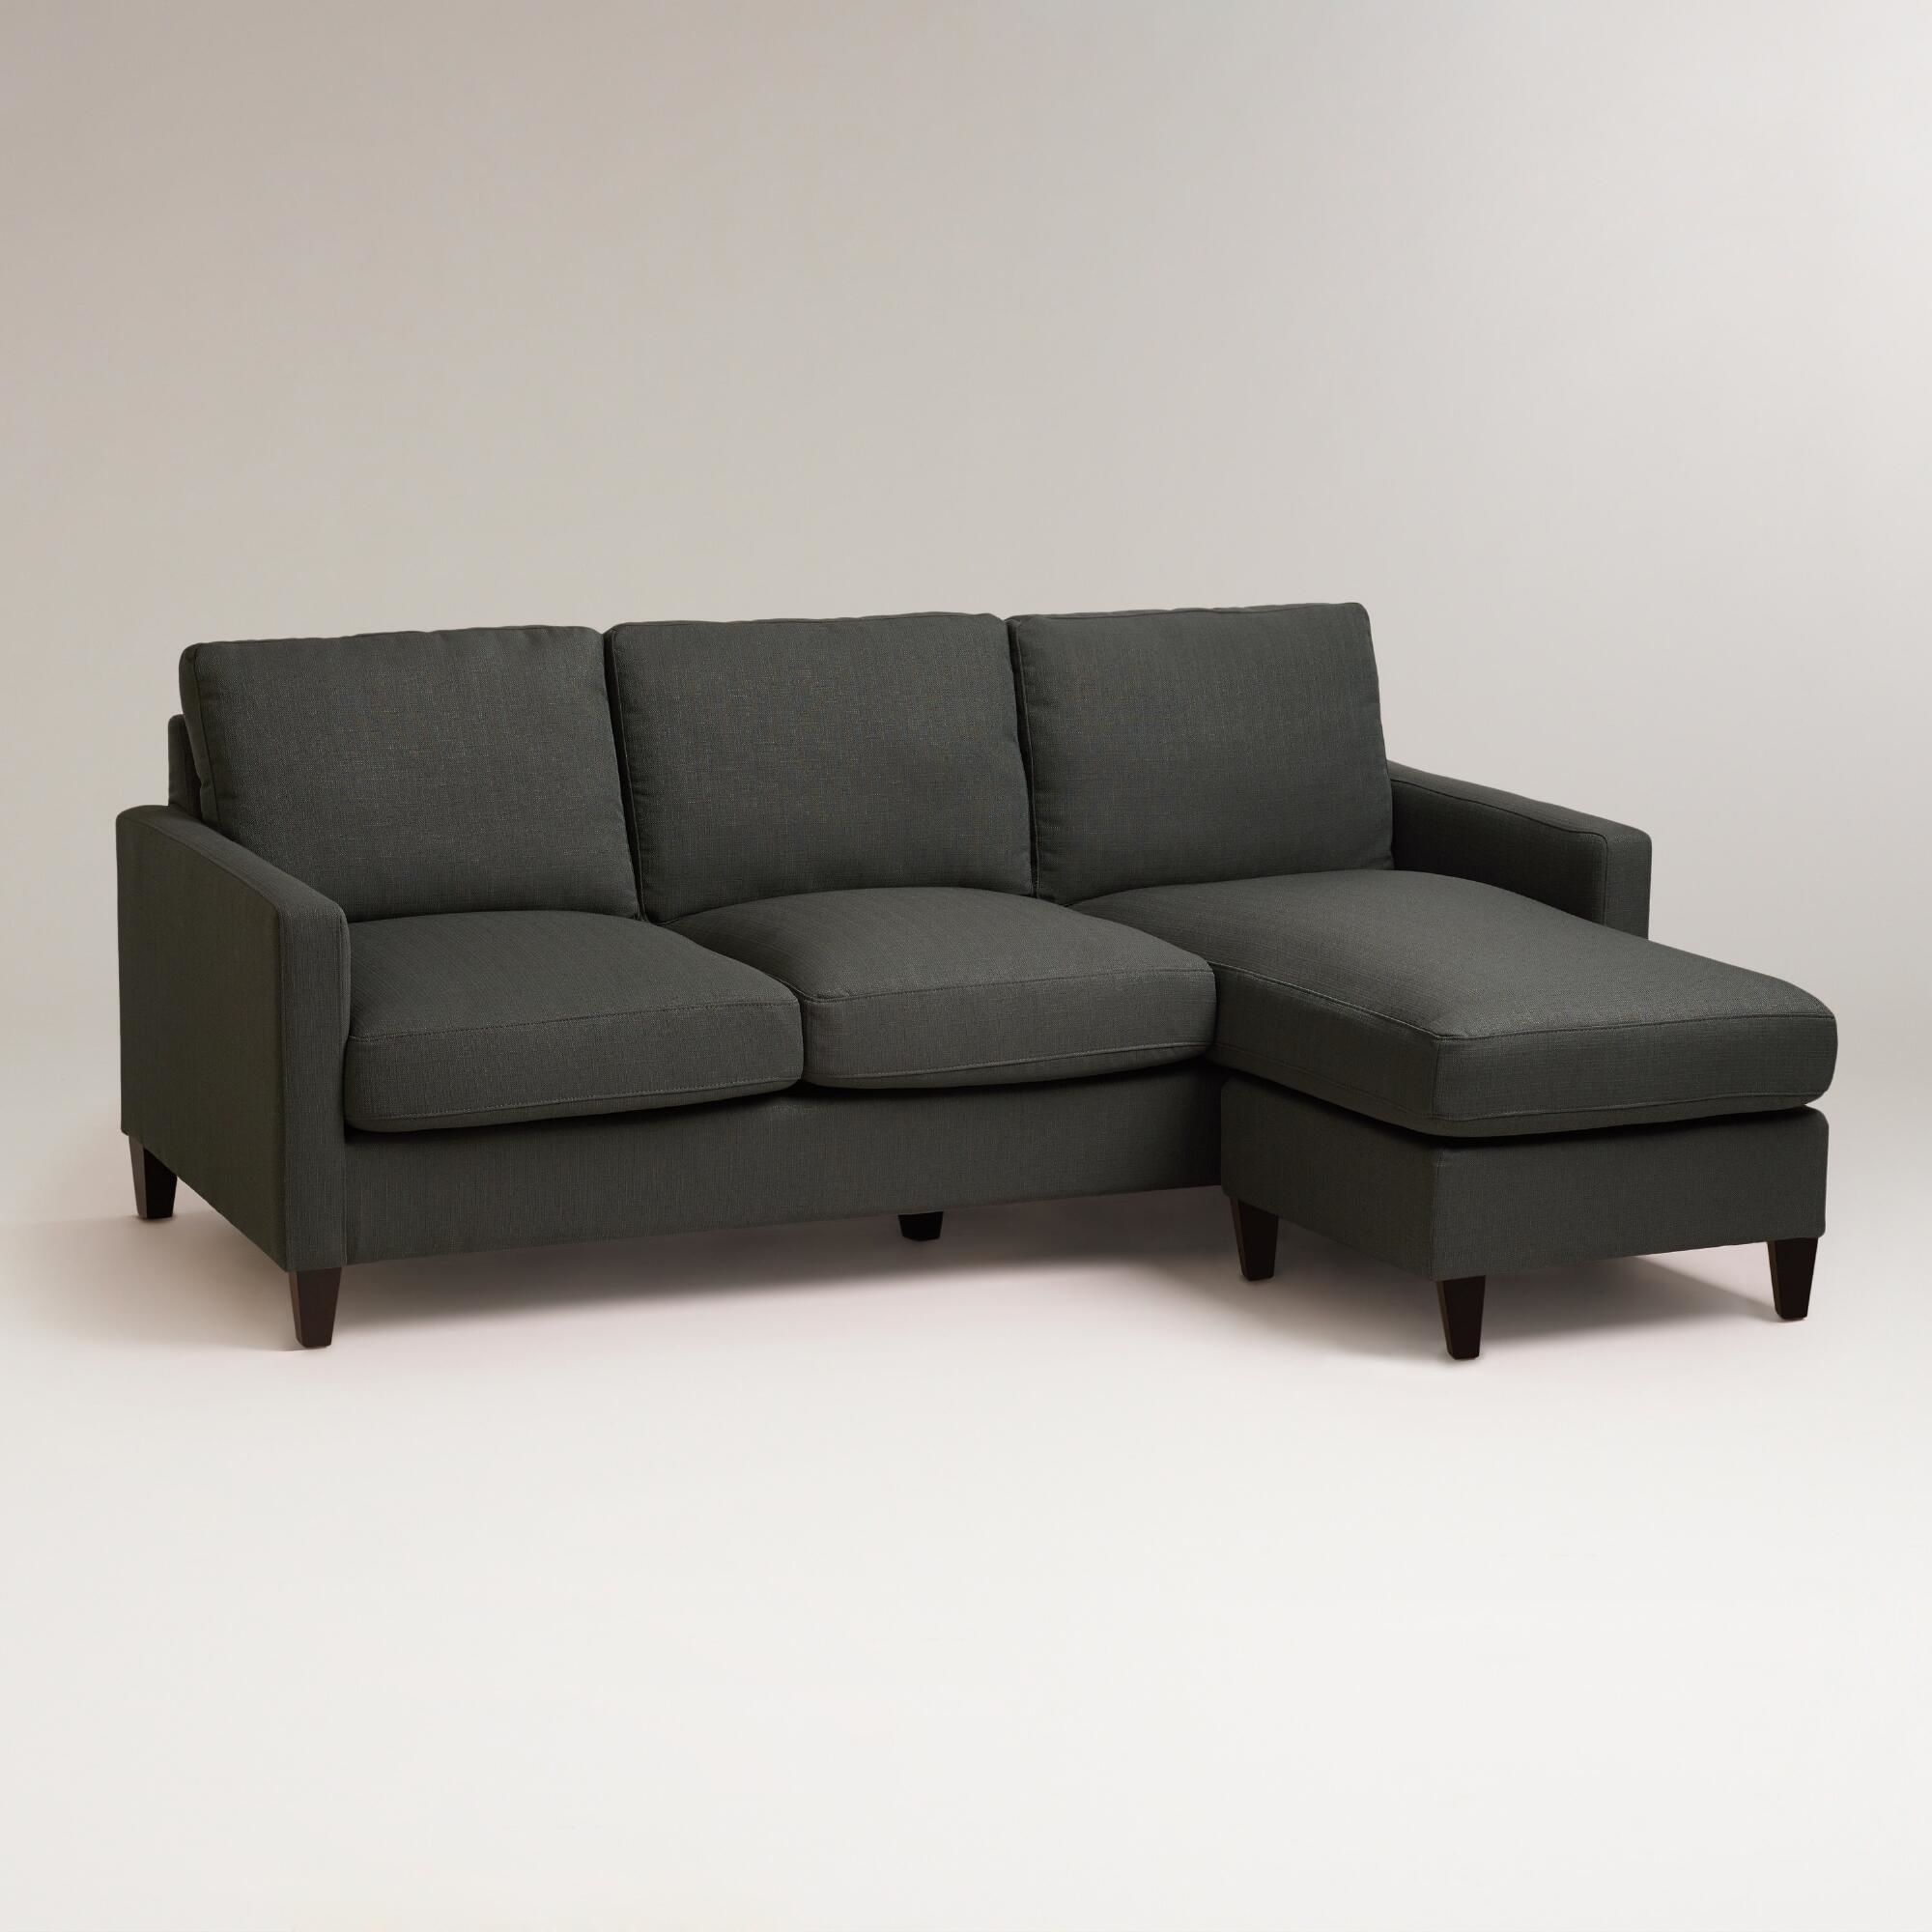 luxury world market abbott sofa construction-Excellent World Market Abbott sofa Online